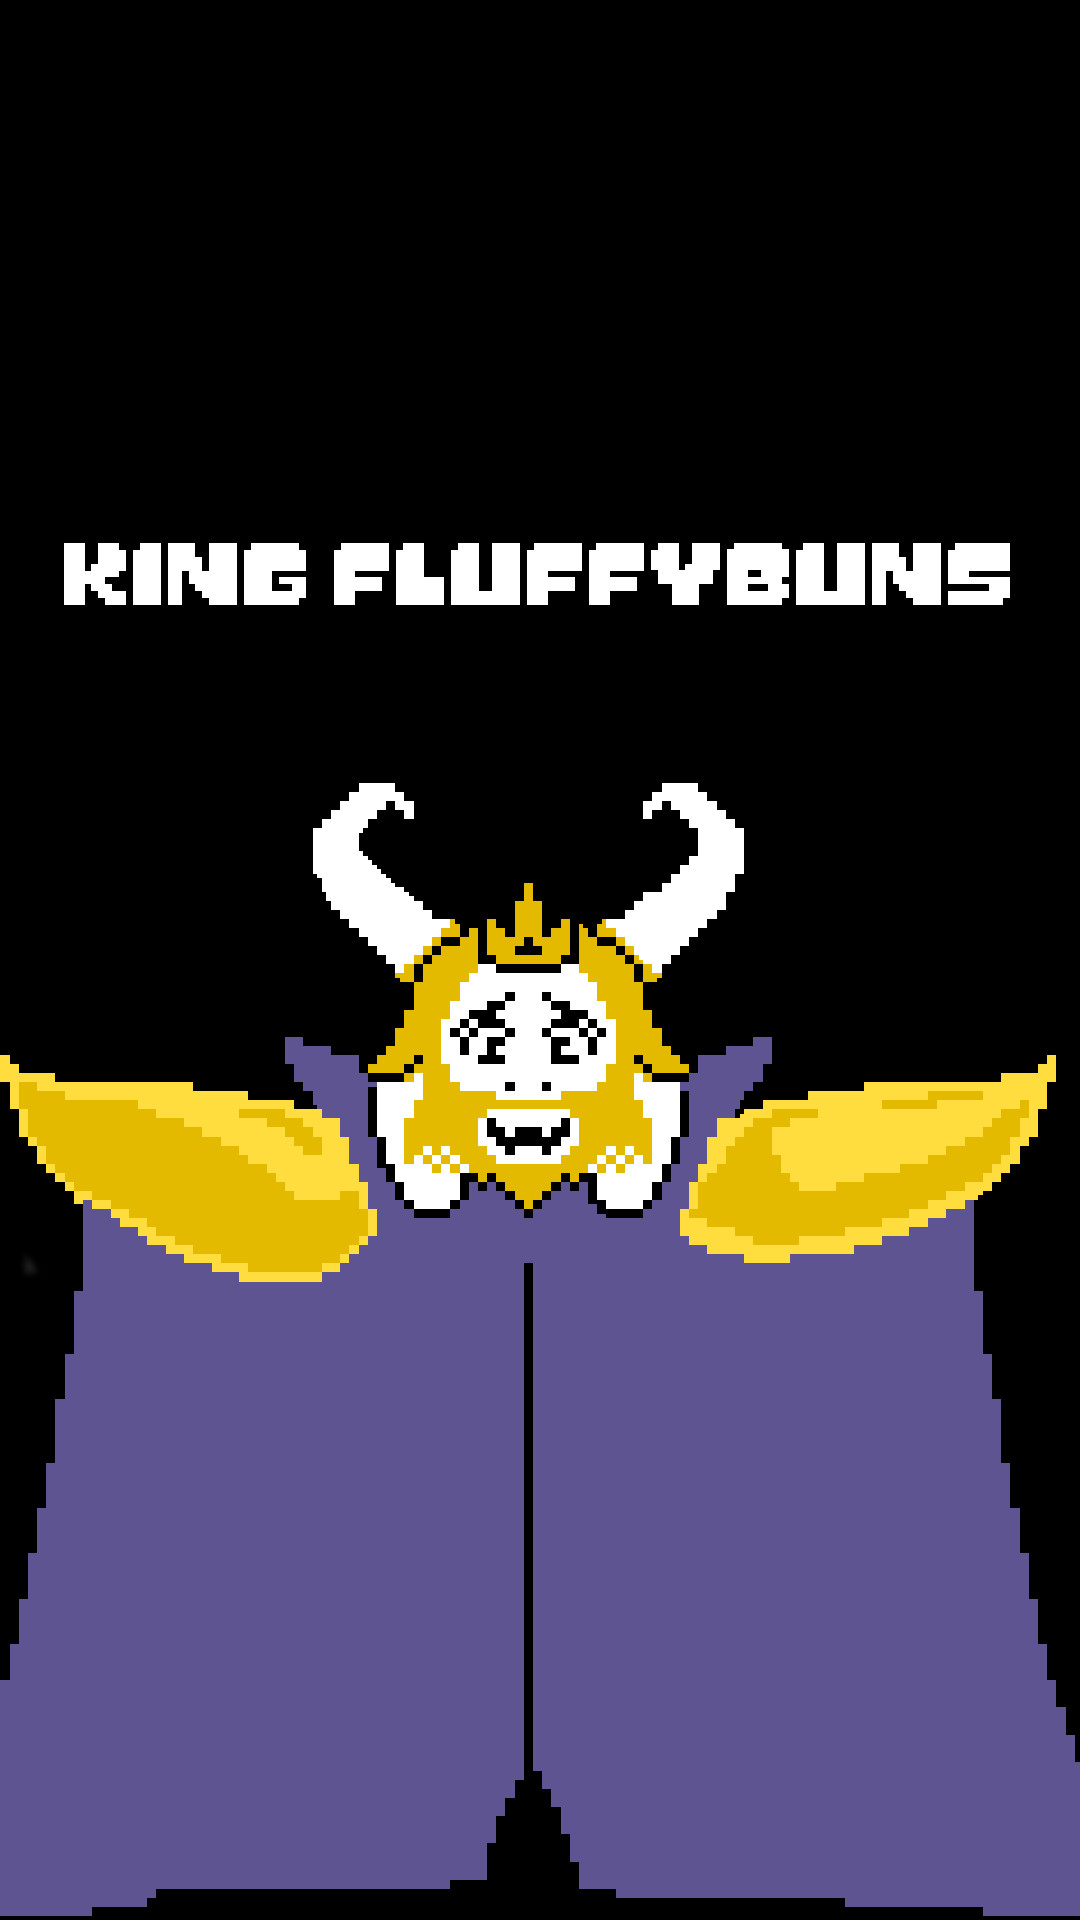 1080x1920 undertale undertale wallpaper undertale wallpapers phone wallpaper asgore  king fluffybuns undertale-wallpapers.tumblr.